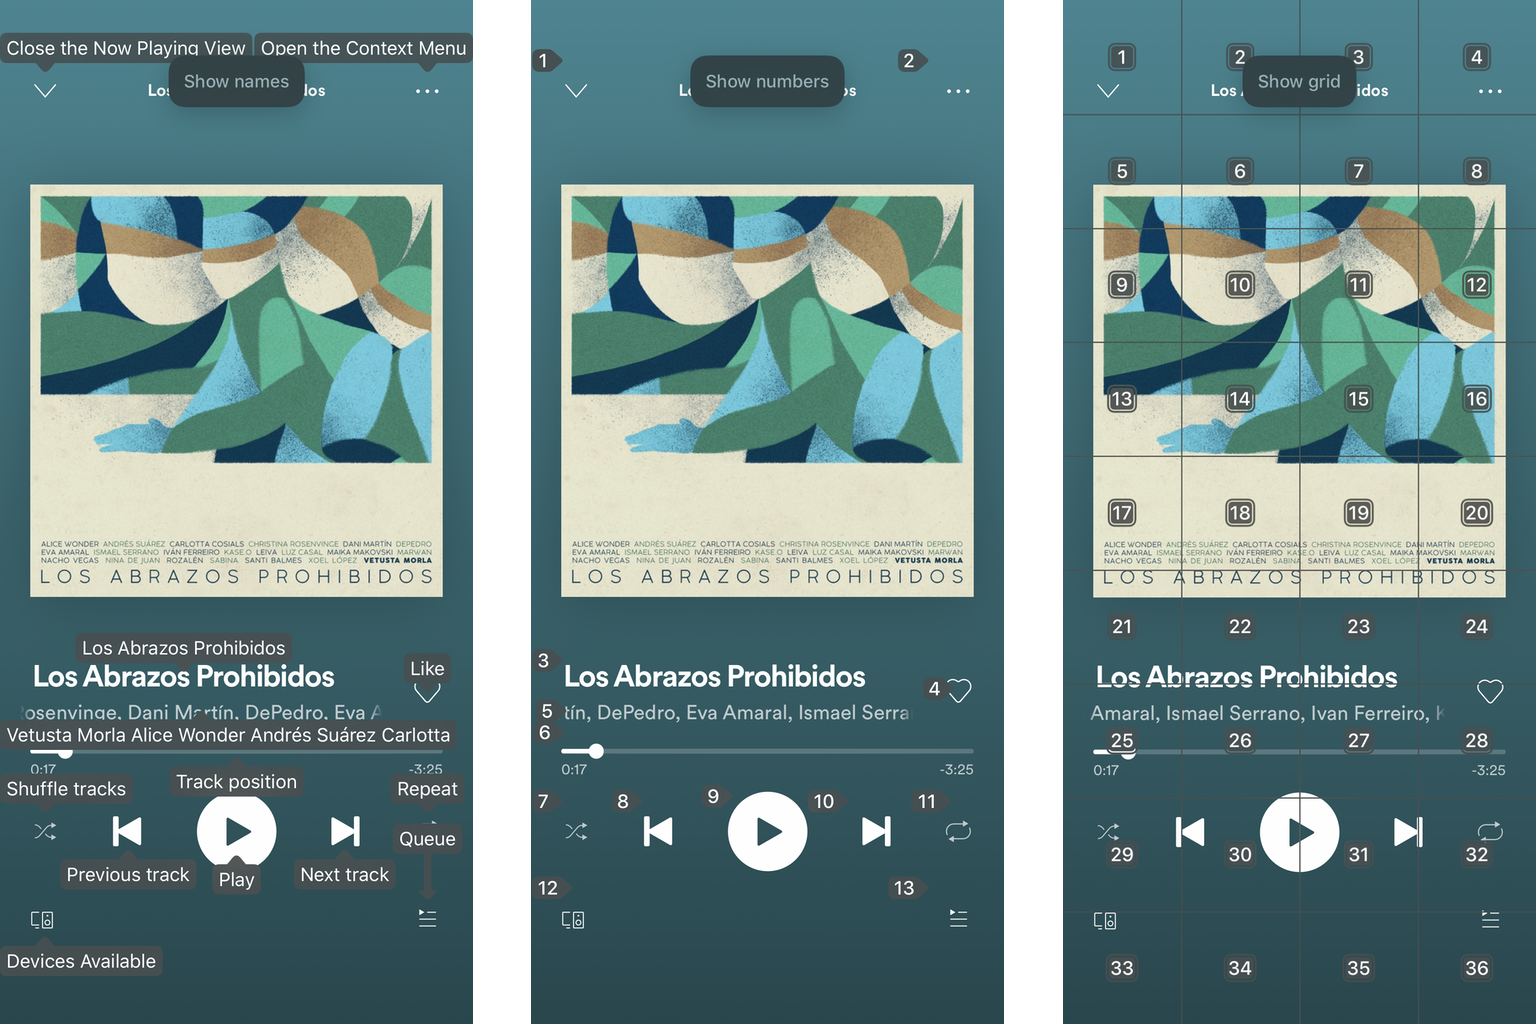 Three screenshots of the Spotify app with examples on how it looks when using Voice Control showing names, numbers or a grid.